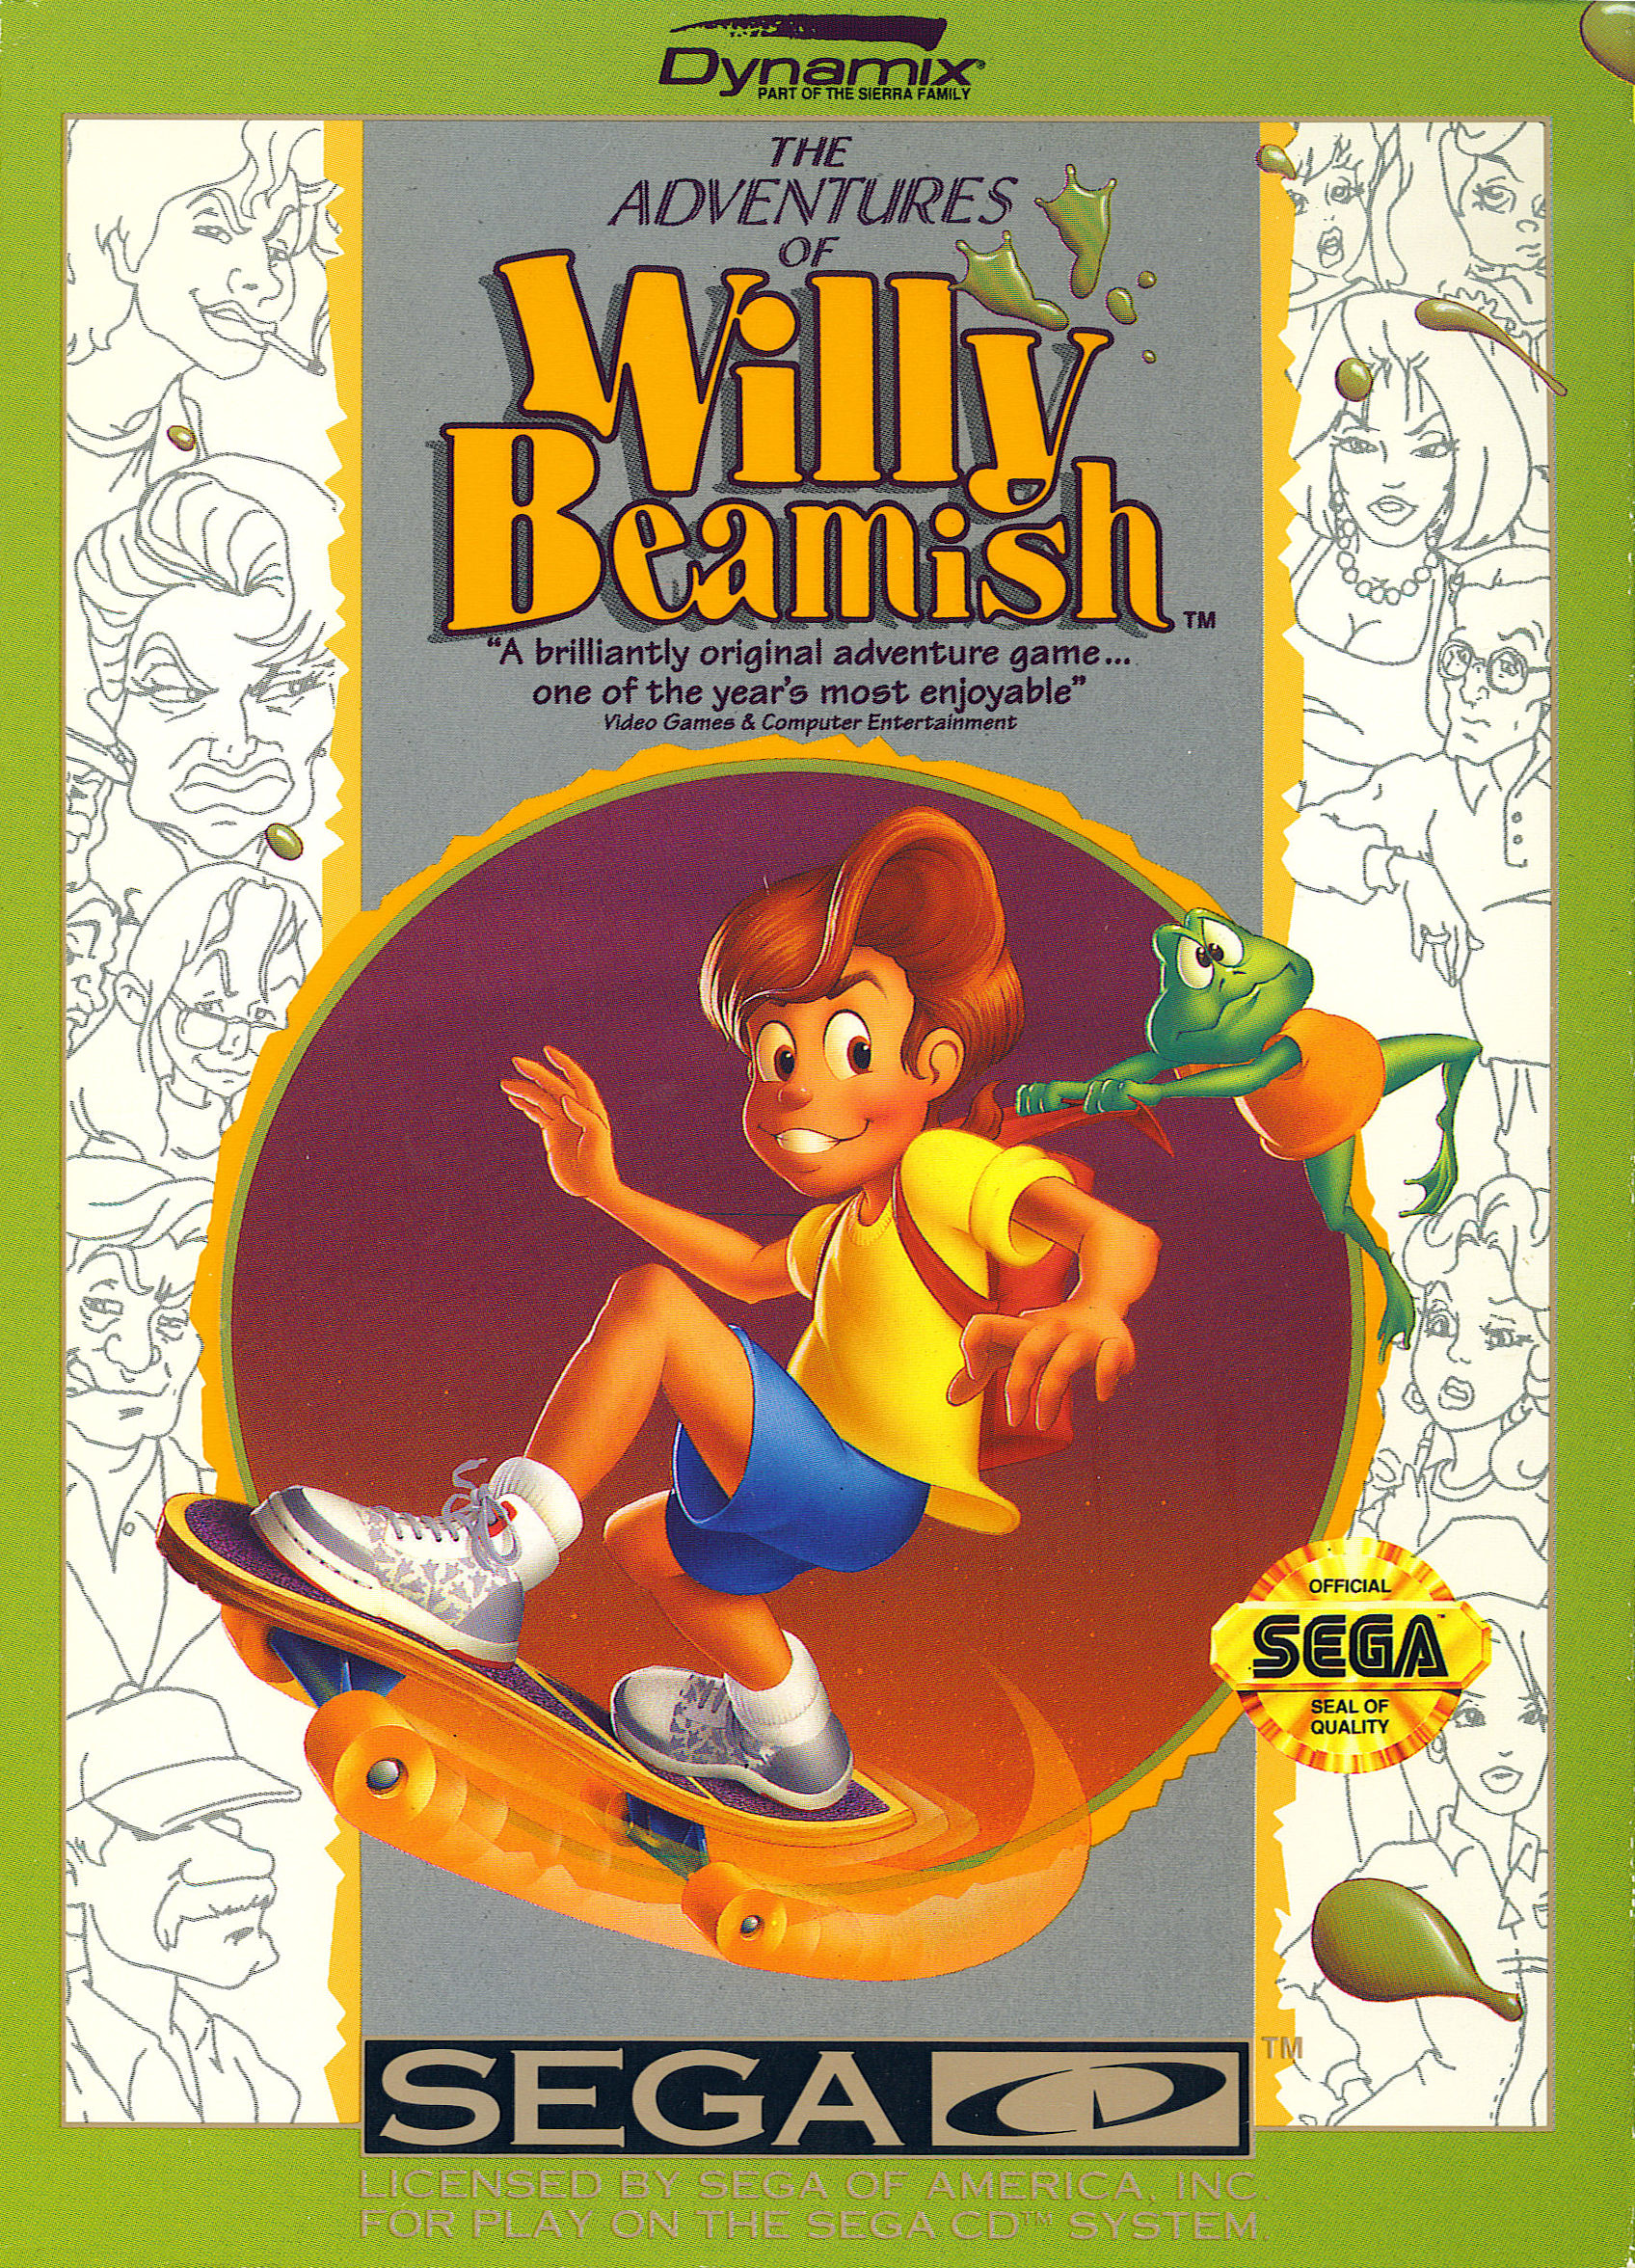 Adventures%20Of%20Willy%20Beamish,%20The